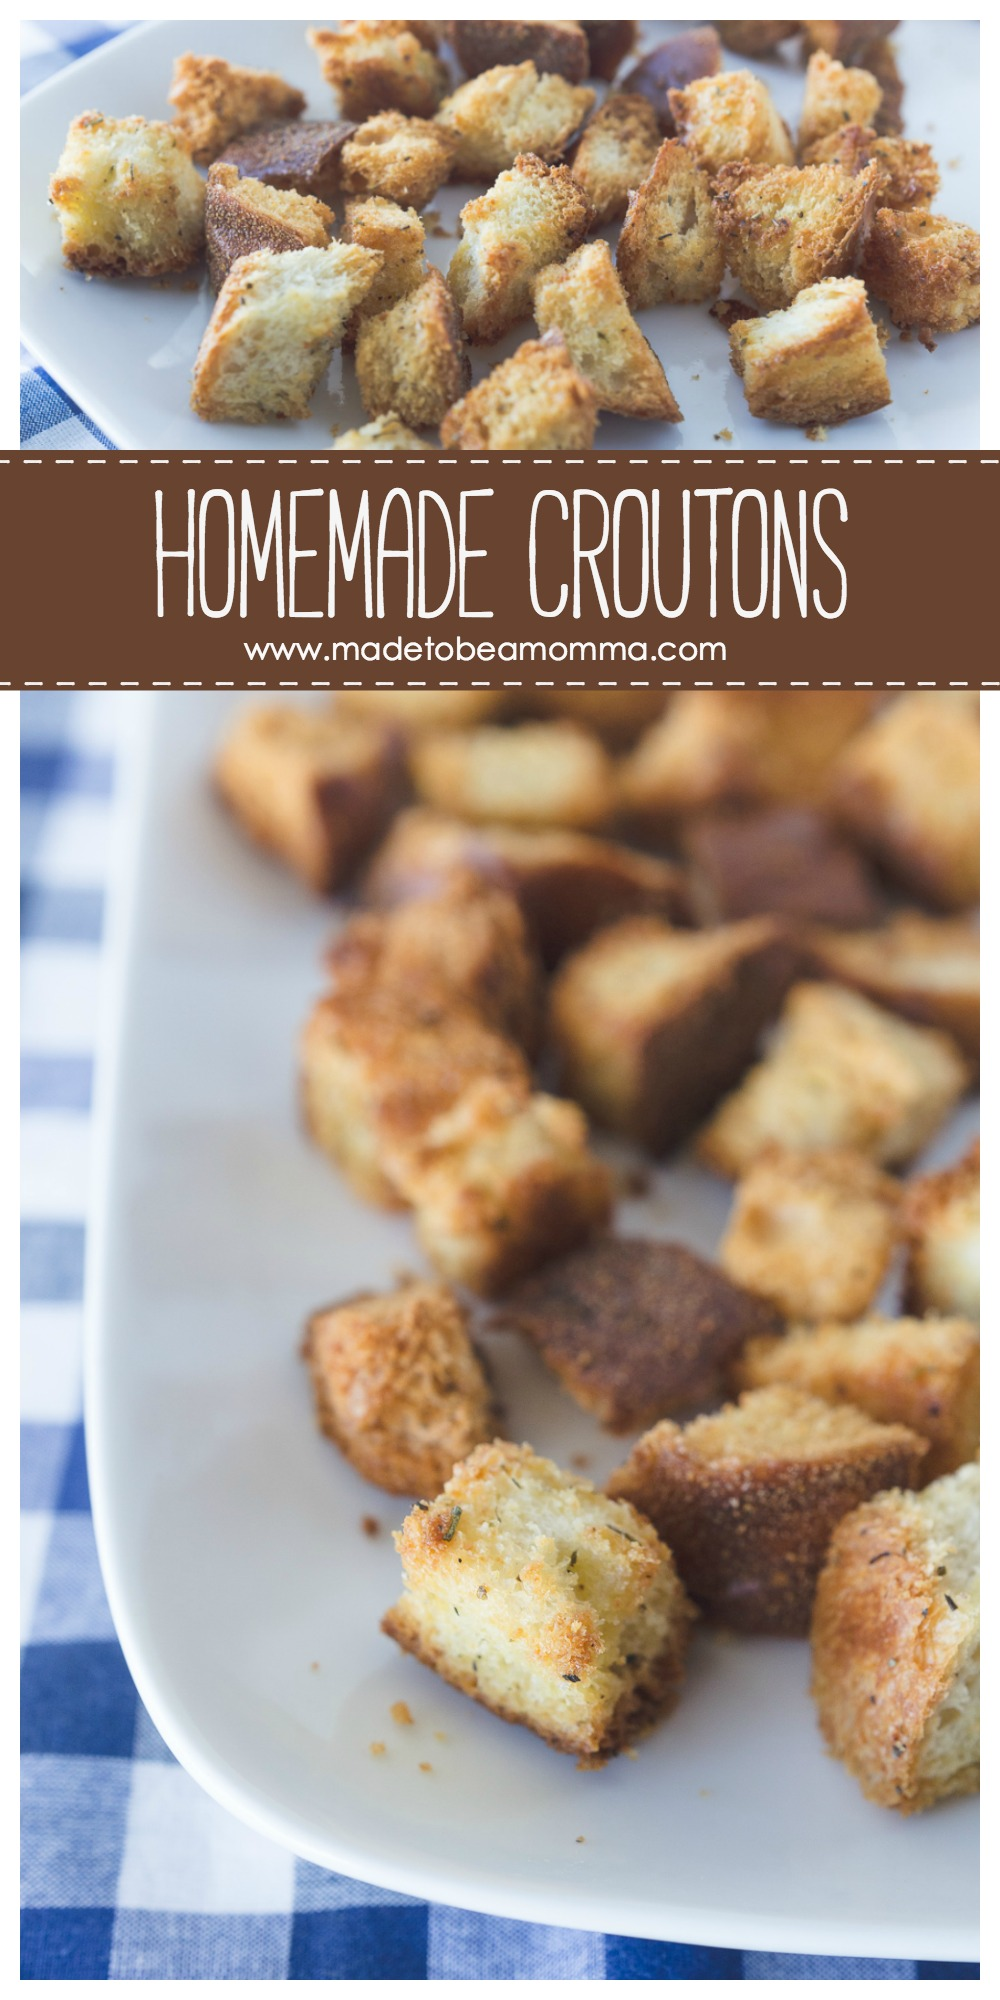 Homemade Croutons: a delicious and simple recipe for croutons that are perfect for soups, salads, and more! www.madetobeamomma.com